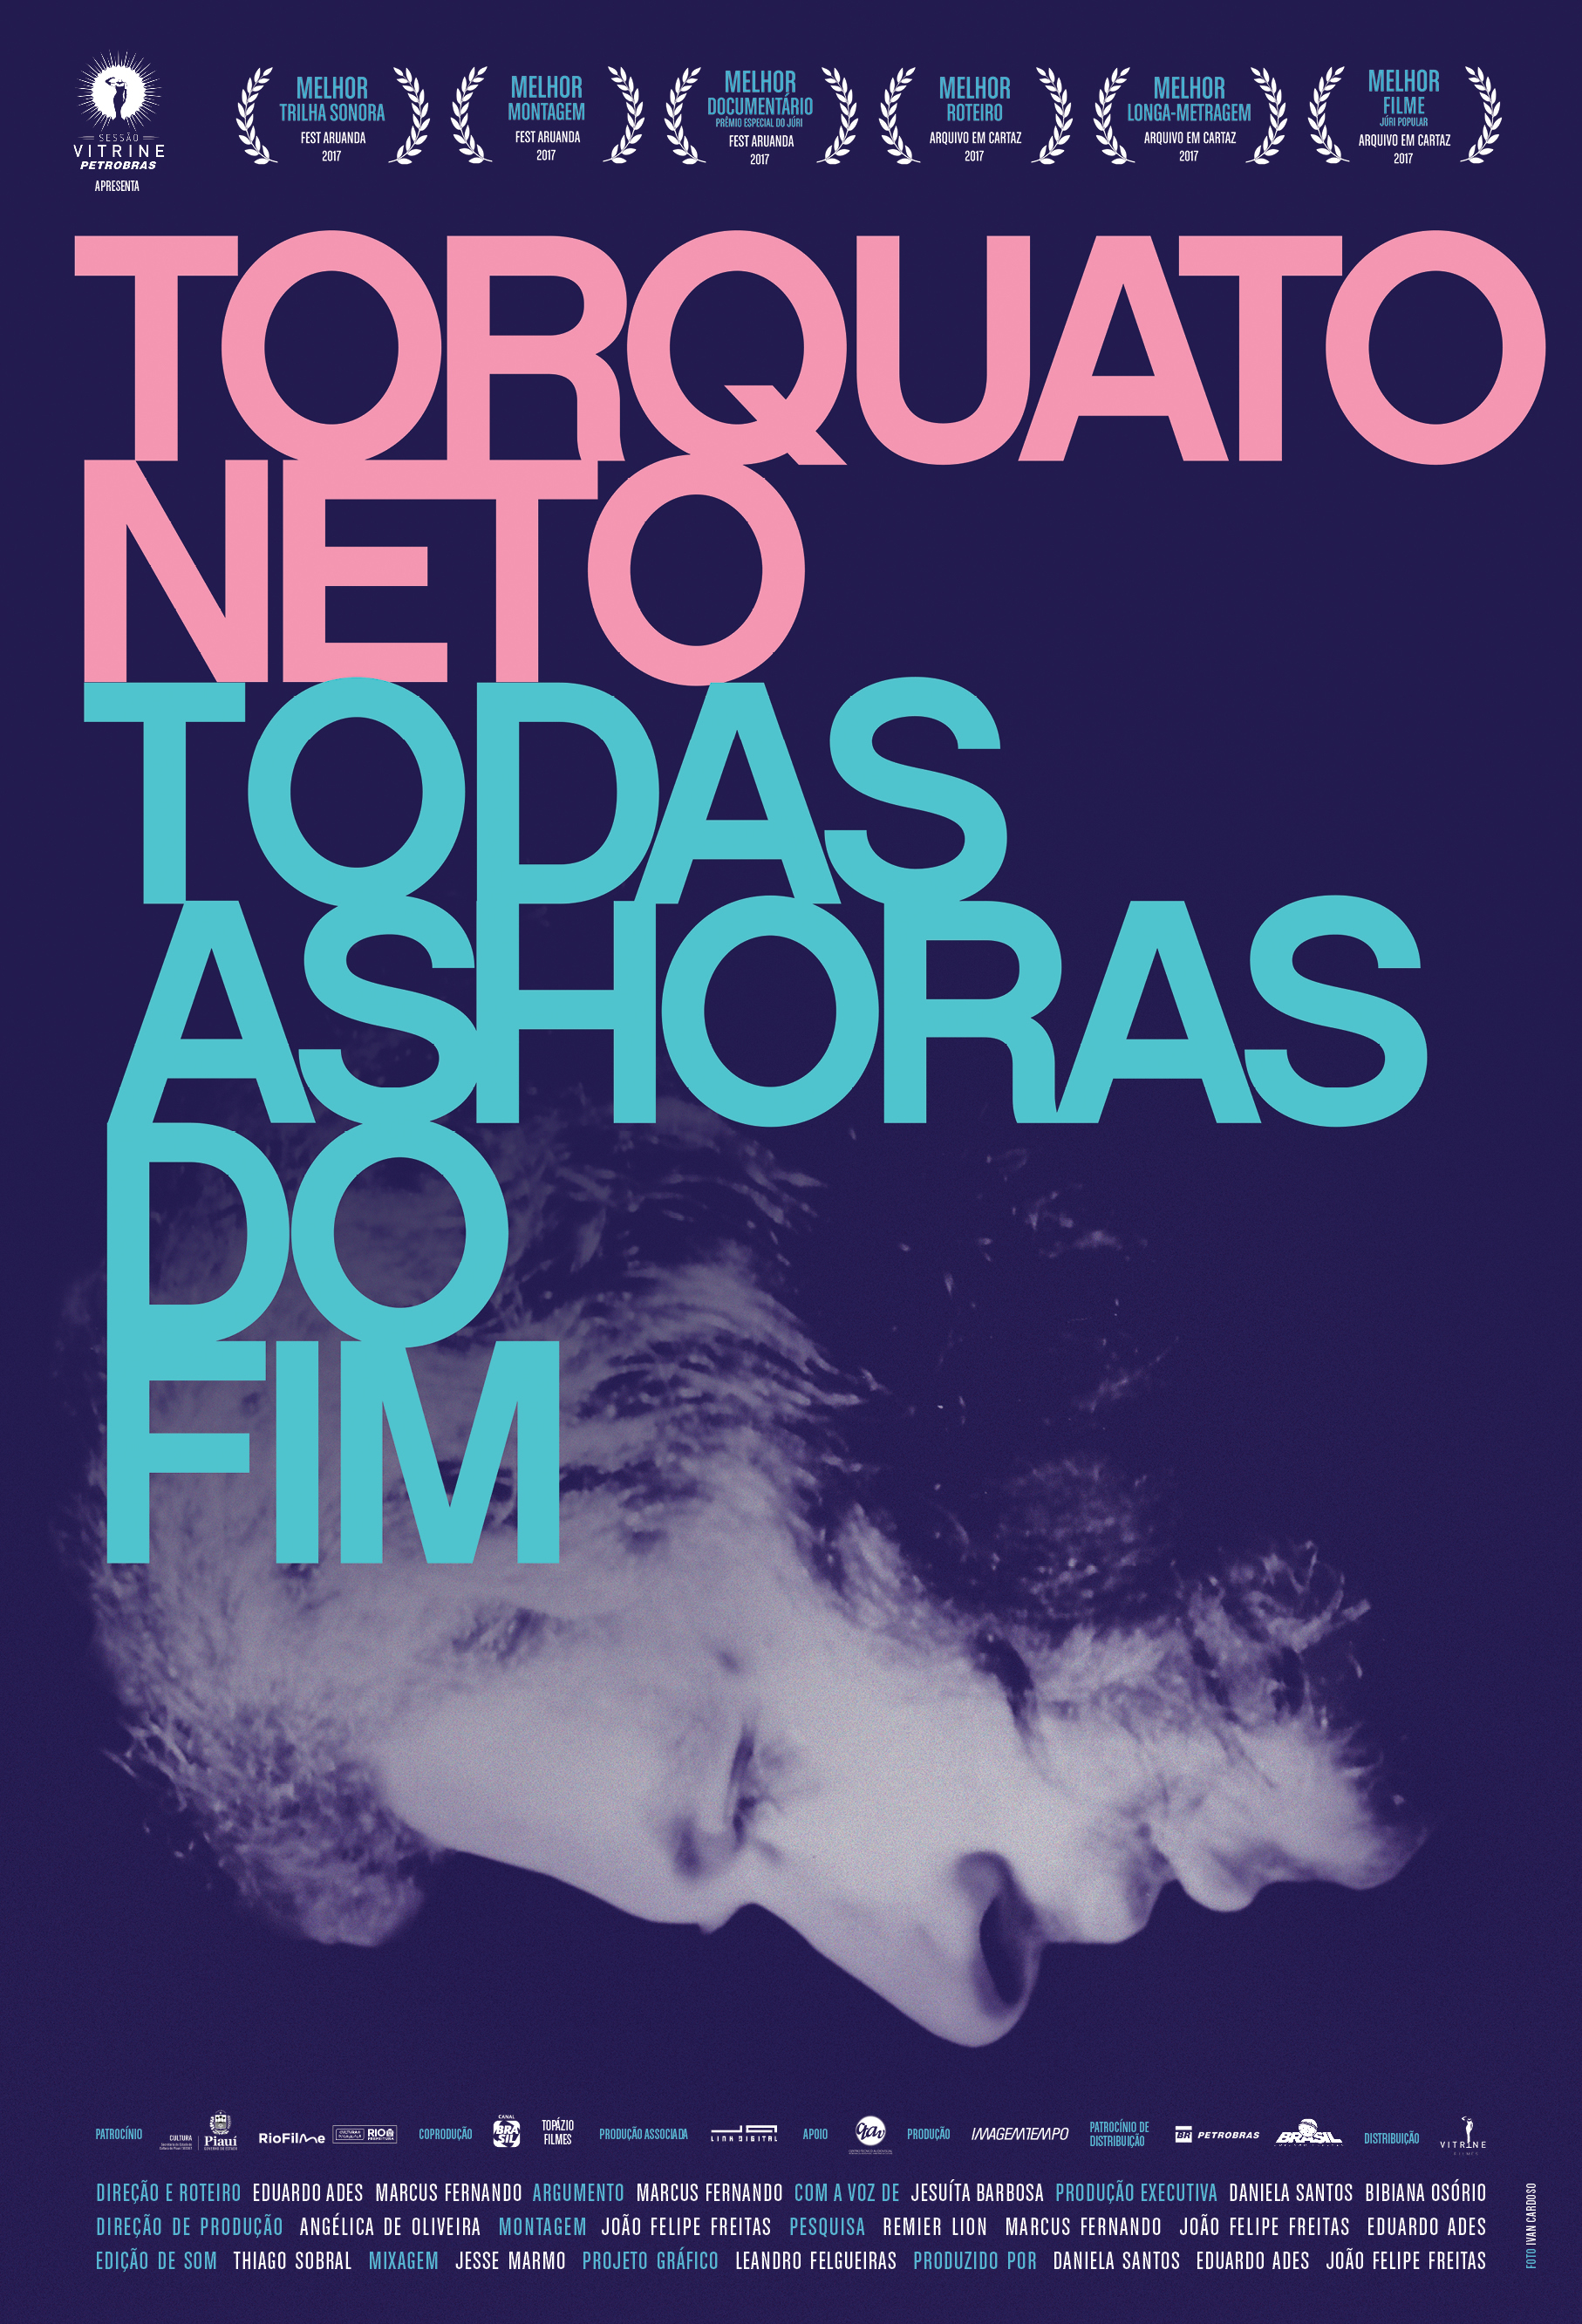 Torquato Neto - Todas as Horas do Fim